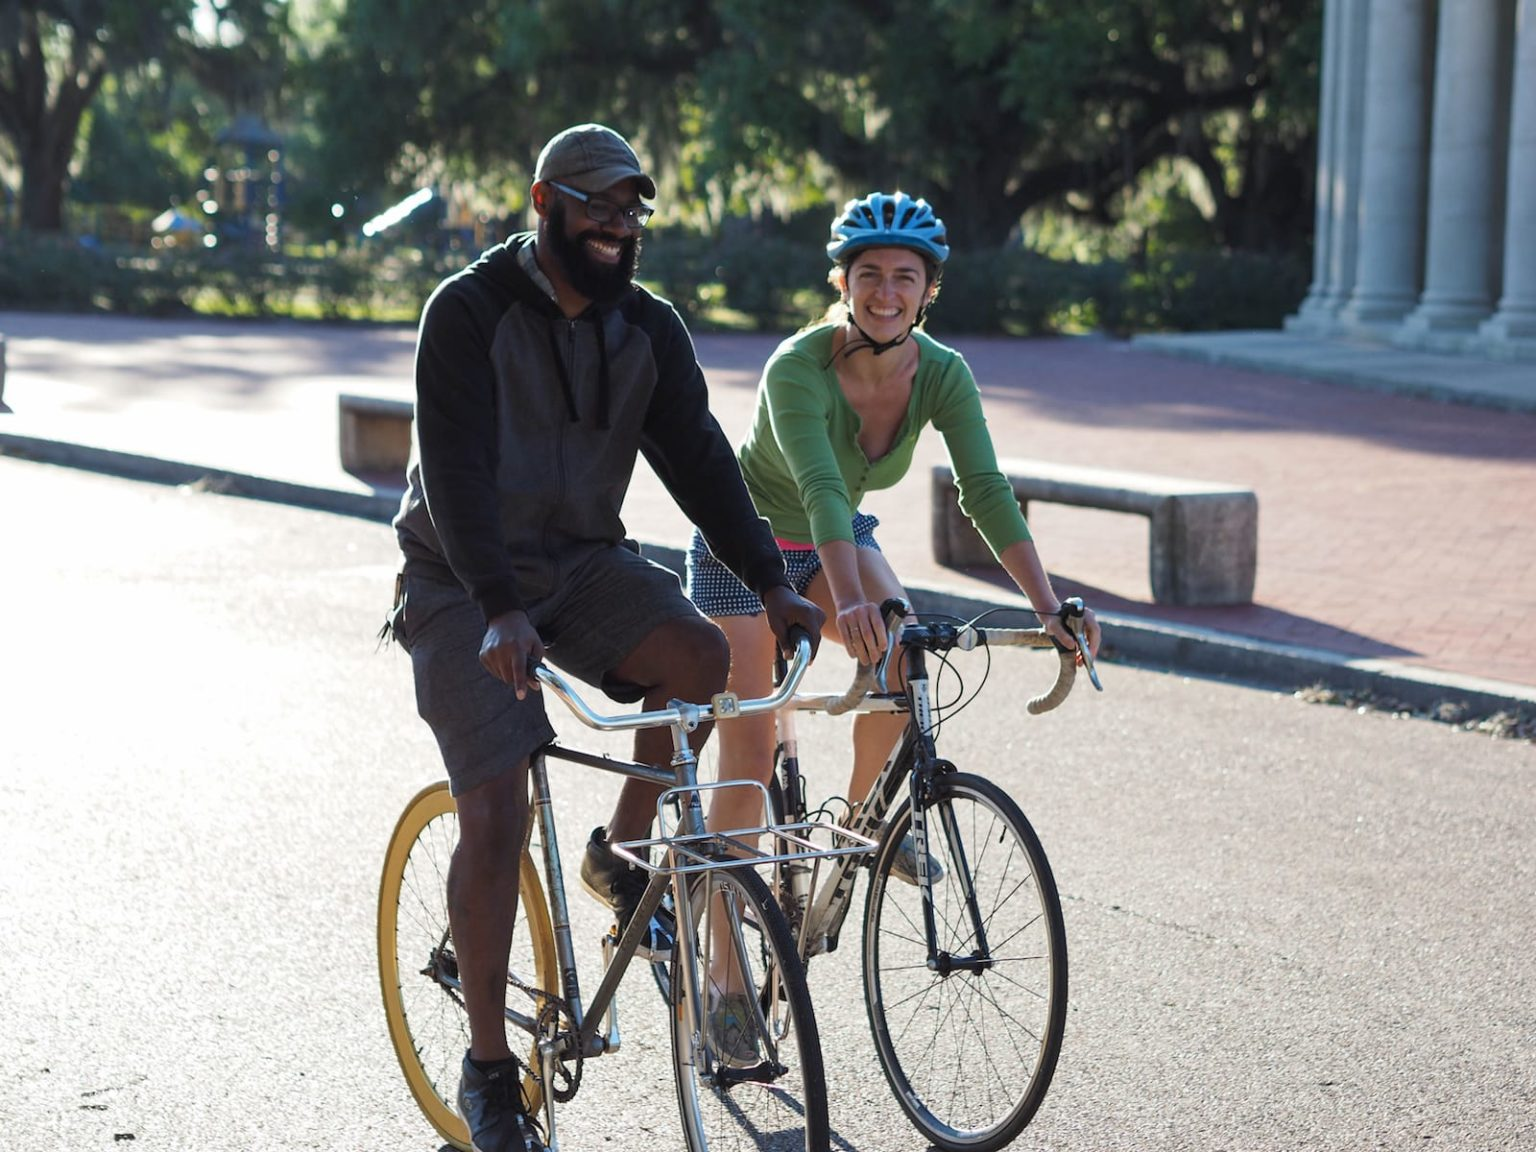 Two people riding bikes